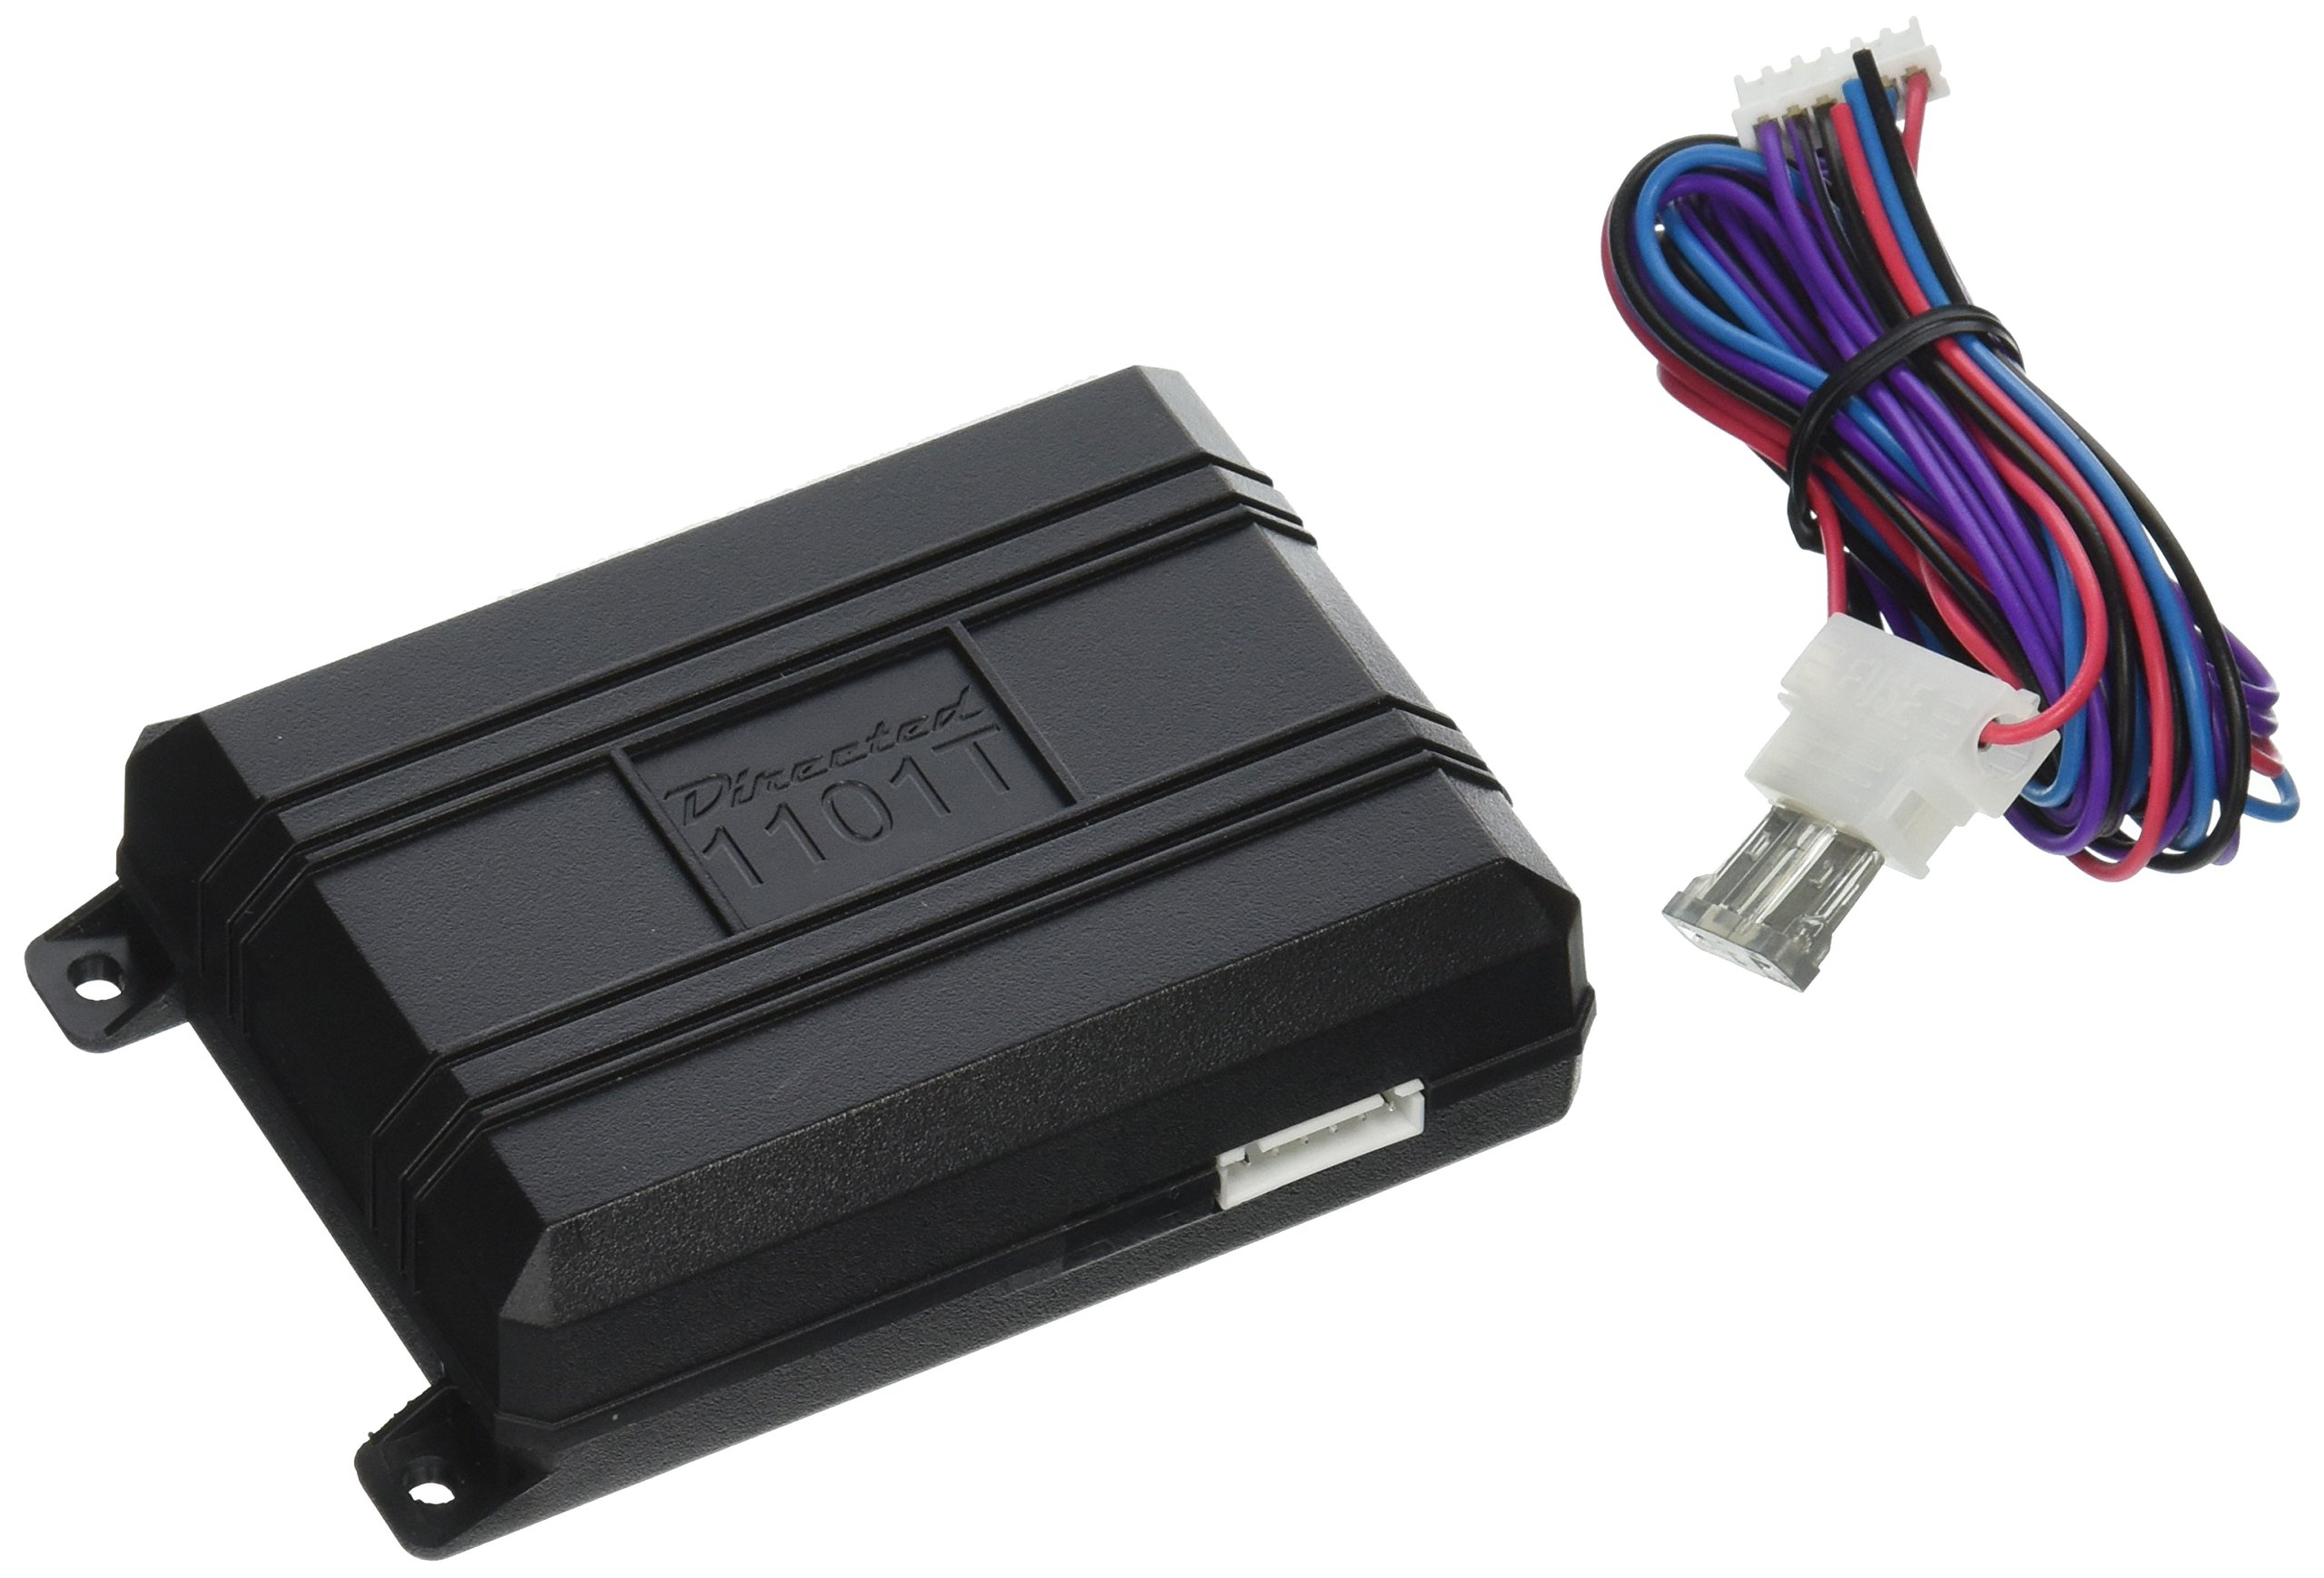 Buy Directed Electronics 555P Ford Pats Bypass Module in Cheap Price